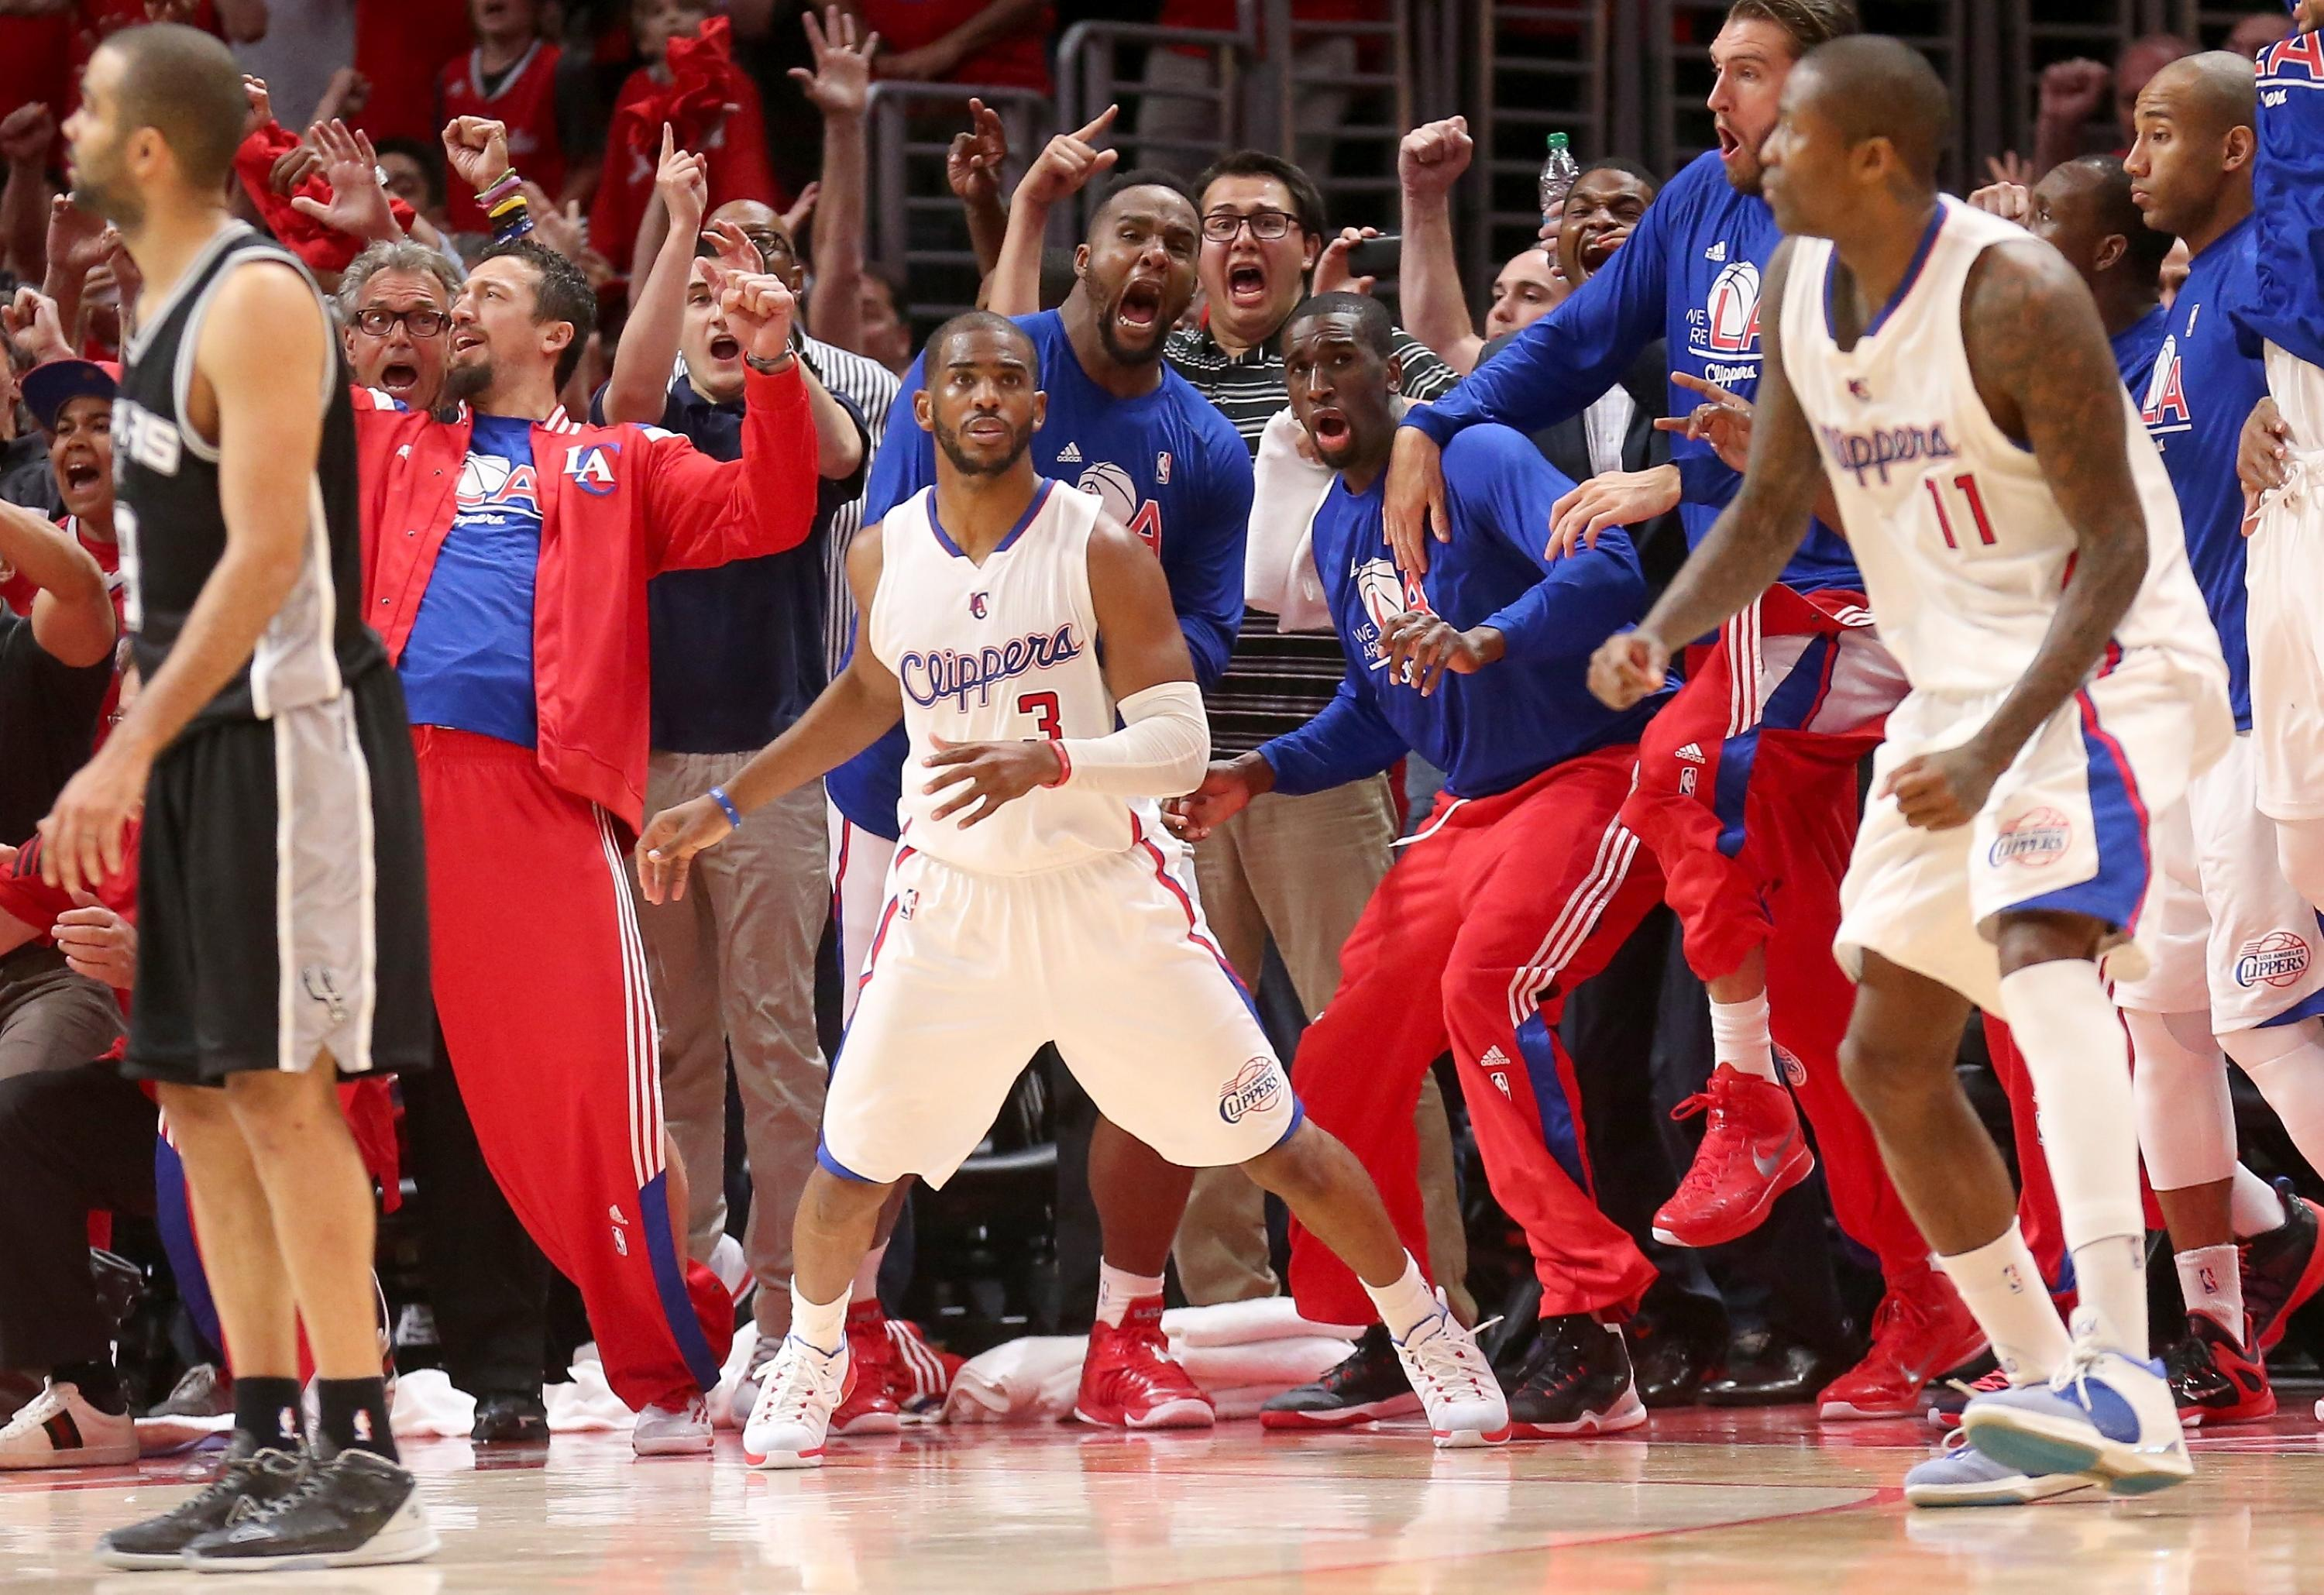 Why Chris Paul was so emotional after knocking off Spurs with memorable one-legged shot